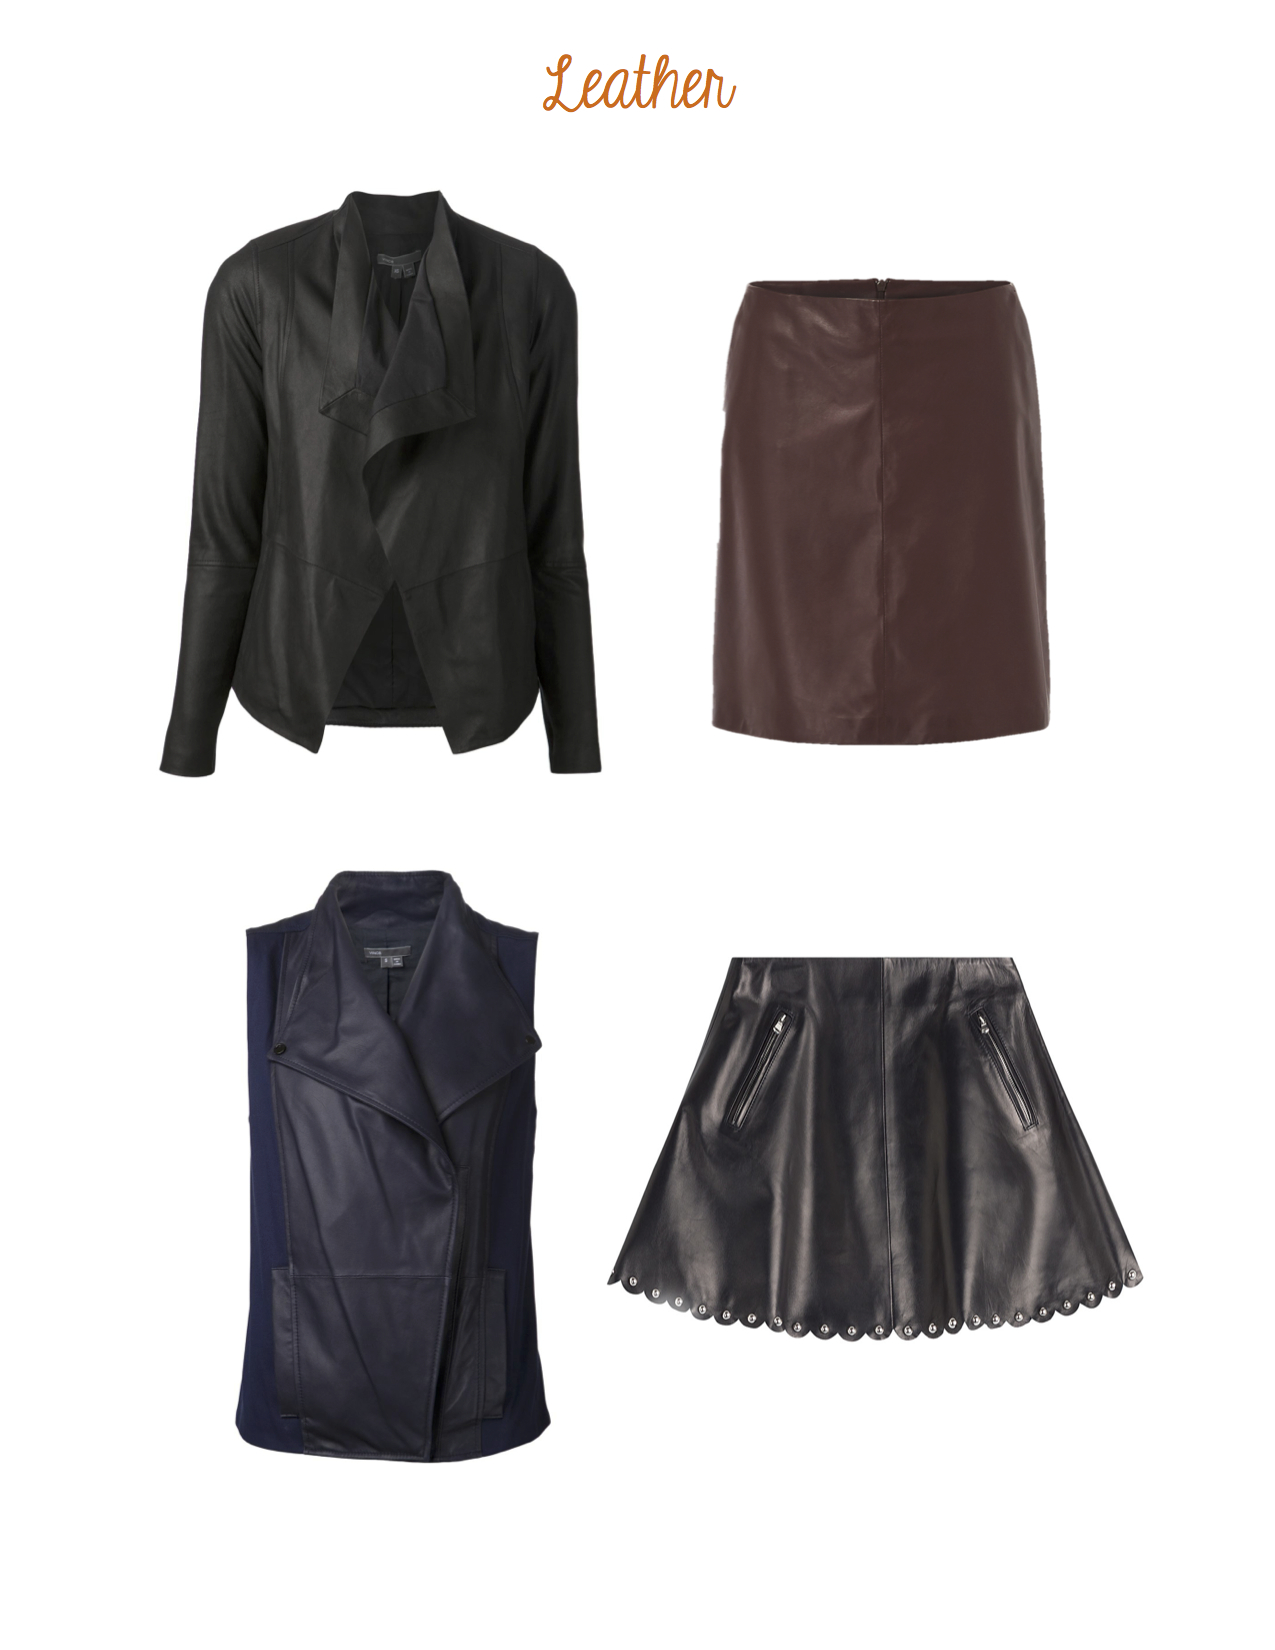 Clockwise from top left: Vince Scuba Leather Jacket, Weekend Max Mara Cosa Skirt, Red Valentino Pele Skirt,  Vince Leather Asymmetrical Vest.